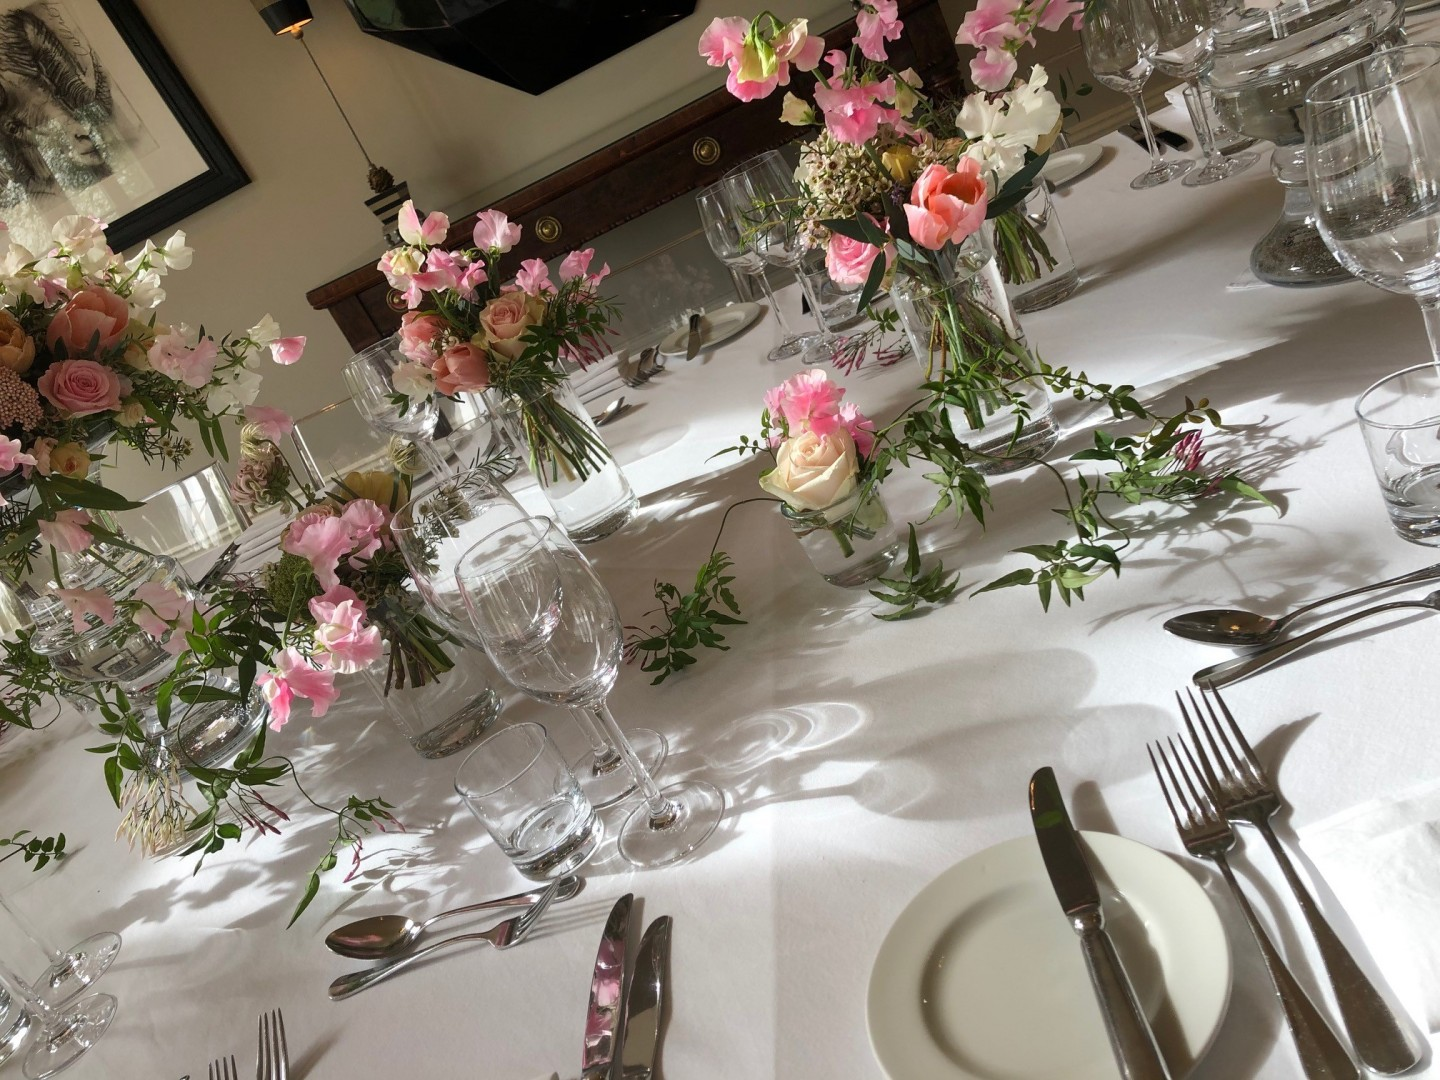 Thank you to everyone at Maison Talbooth for making our day run so smoothly!